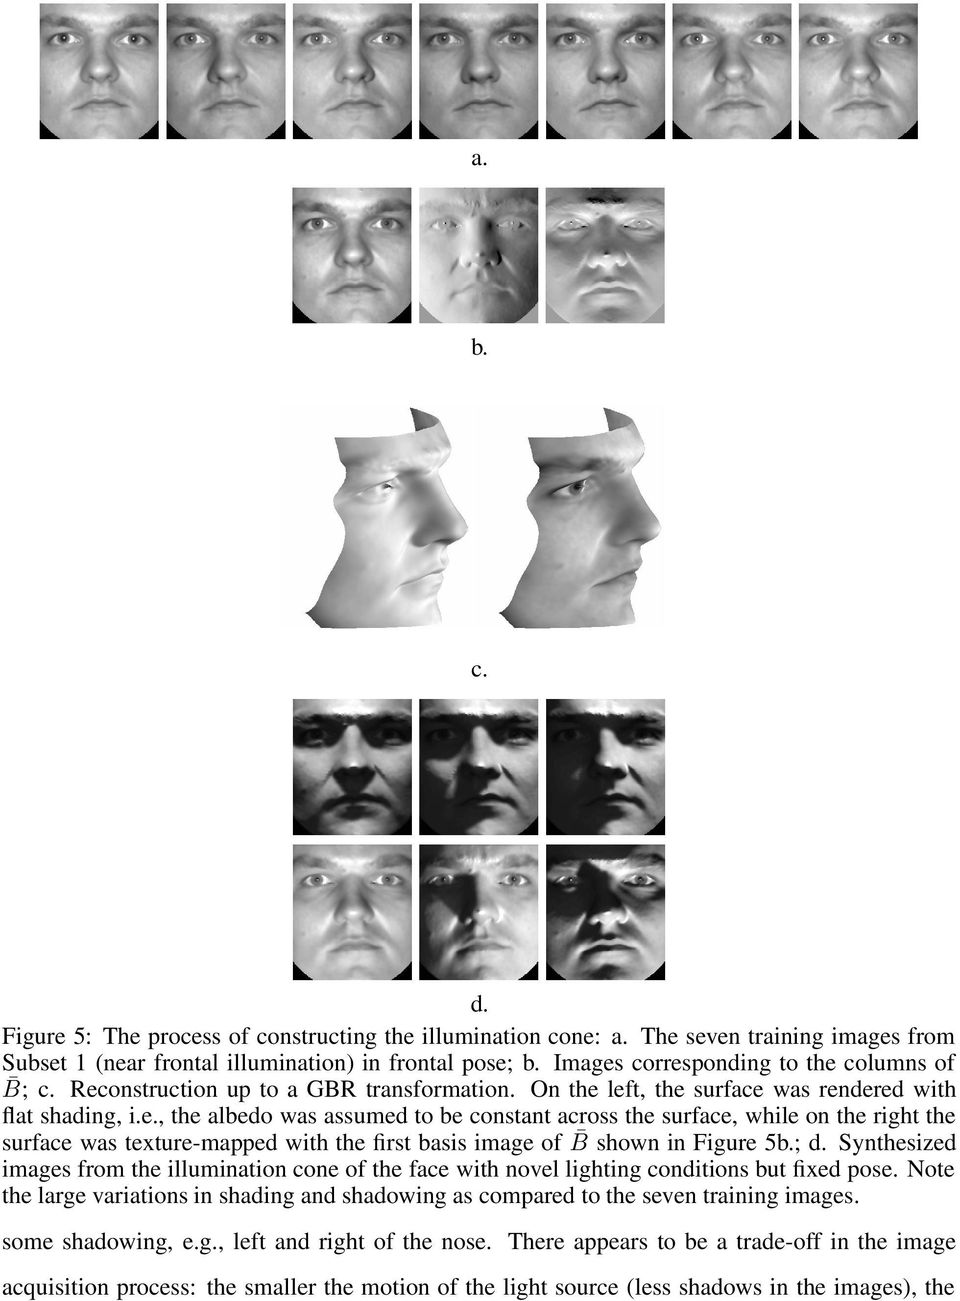 Figure 7: Synthesized images under variable pose and lighting generated from the training images shown in Figure 5a.